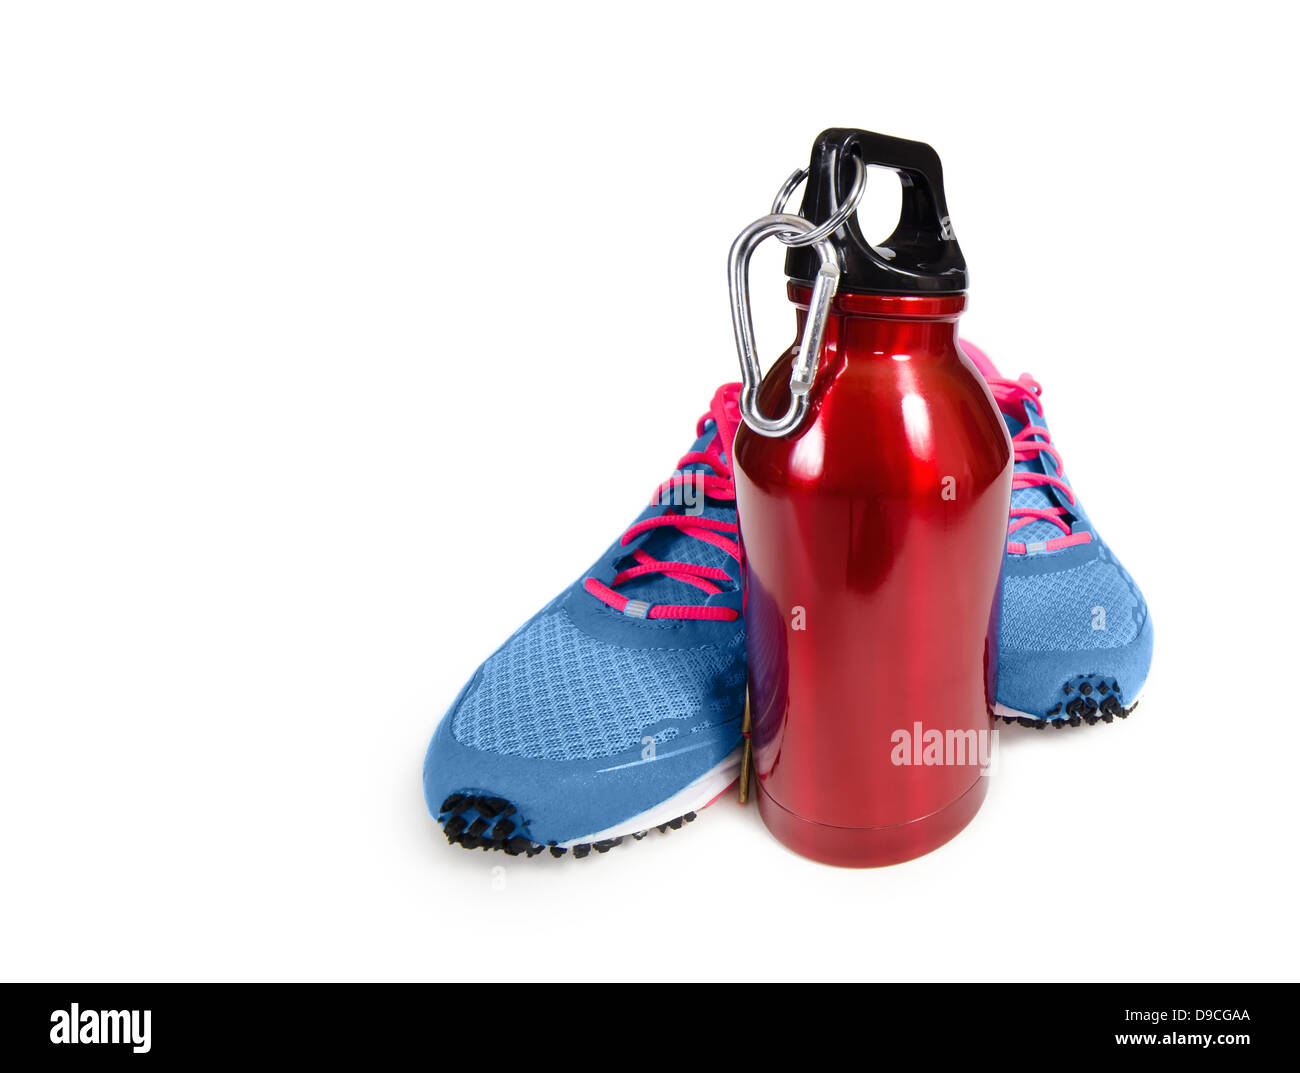 Red stainless steel water bottle with running shoes over white. Exercise and hydration concept. Stock Photo